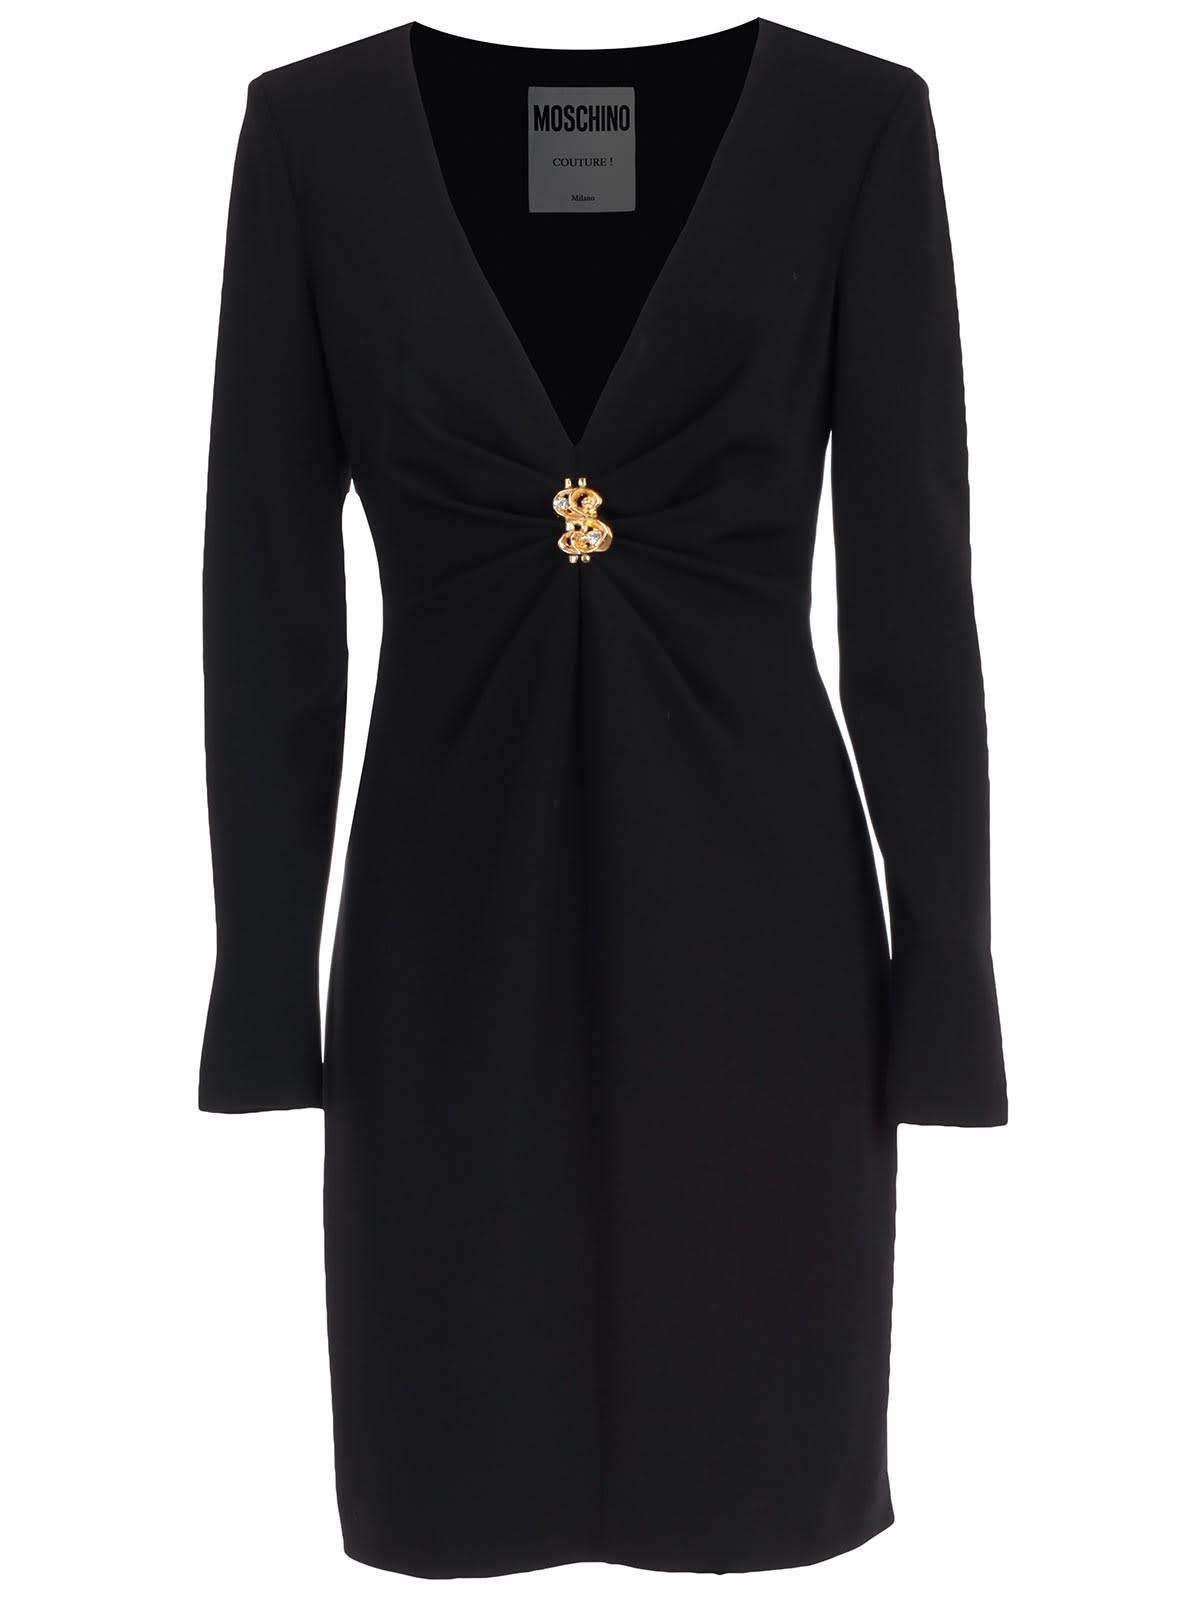 Buy Moschino Dress L/s V Neck online, shop Moschino with free shipping